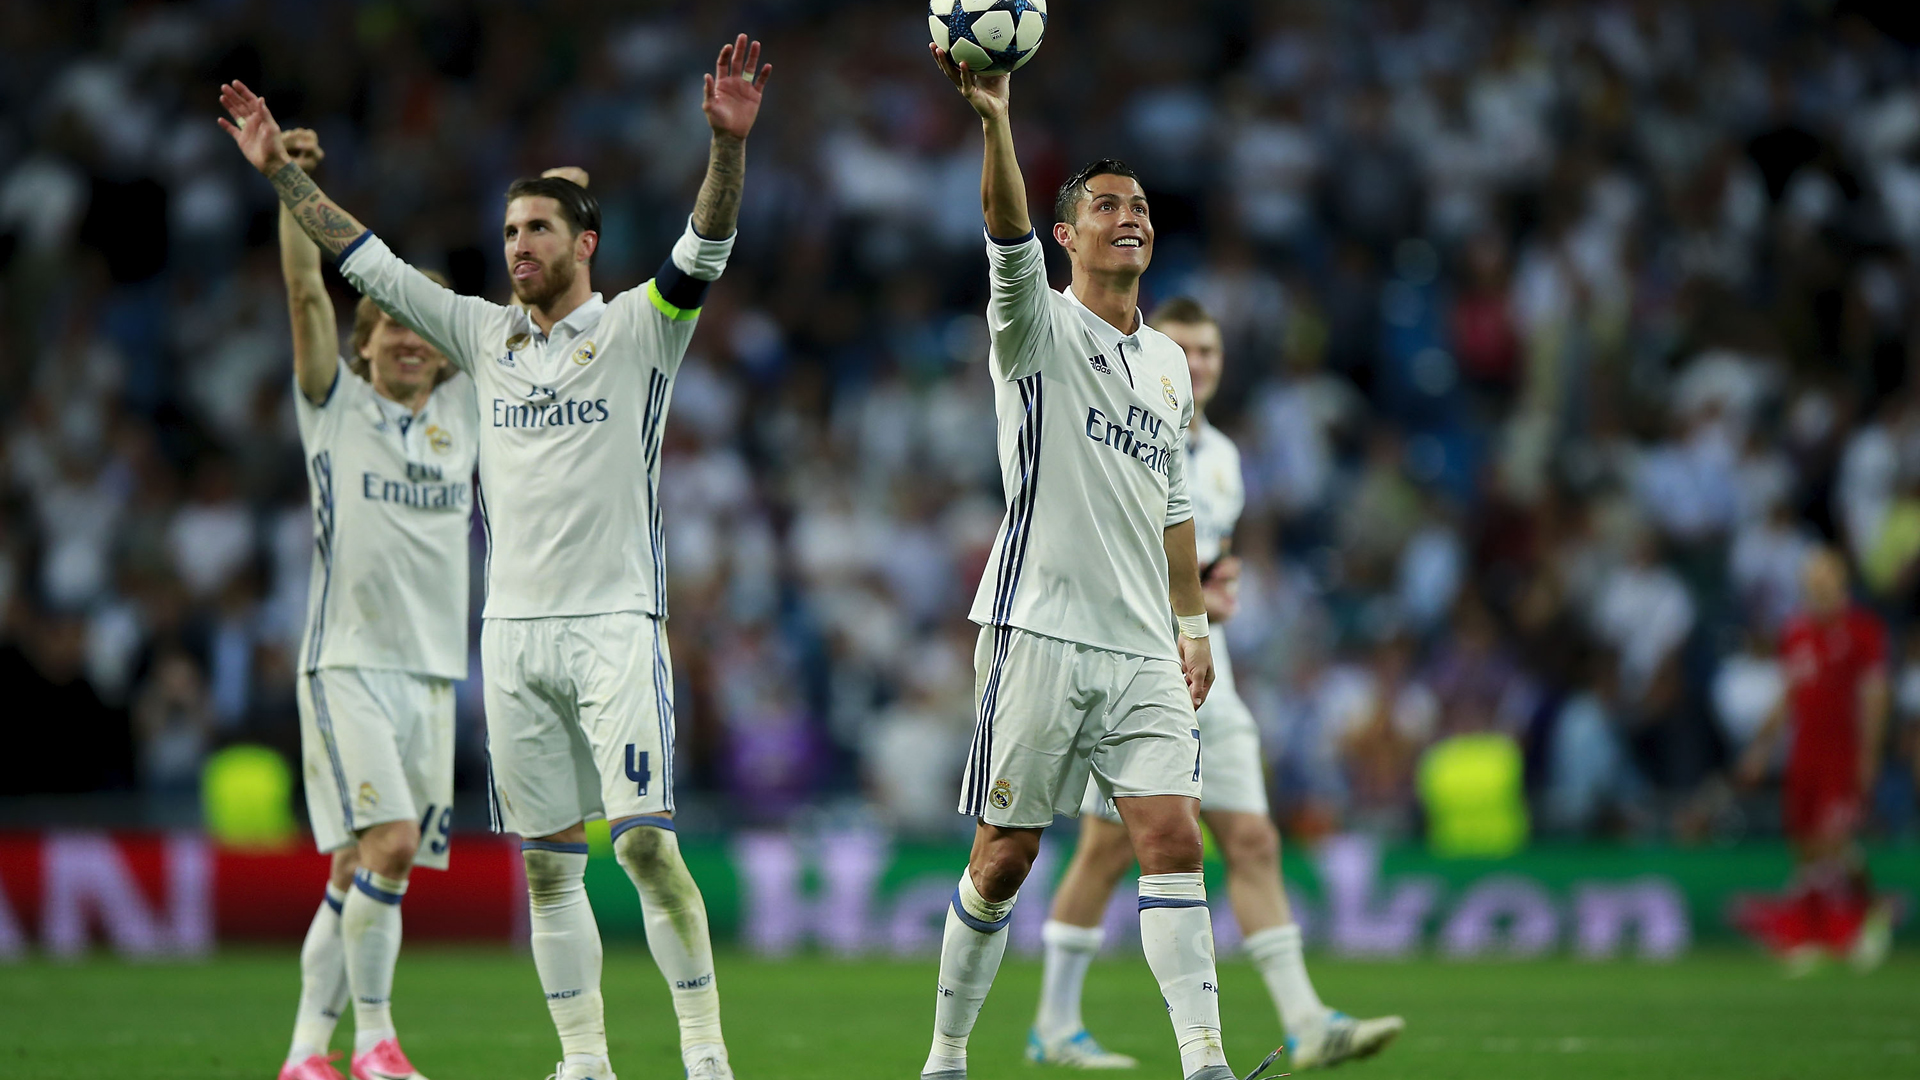 Real Madrid completed a 6-3 aggregate win over Bayern